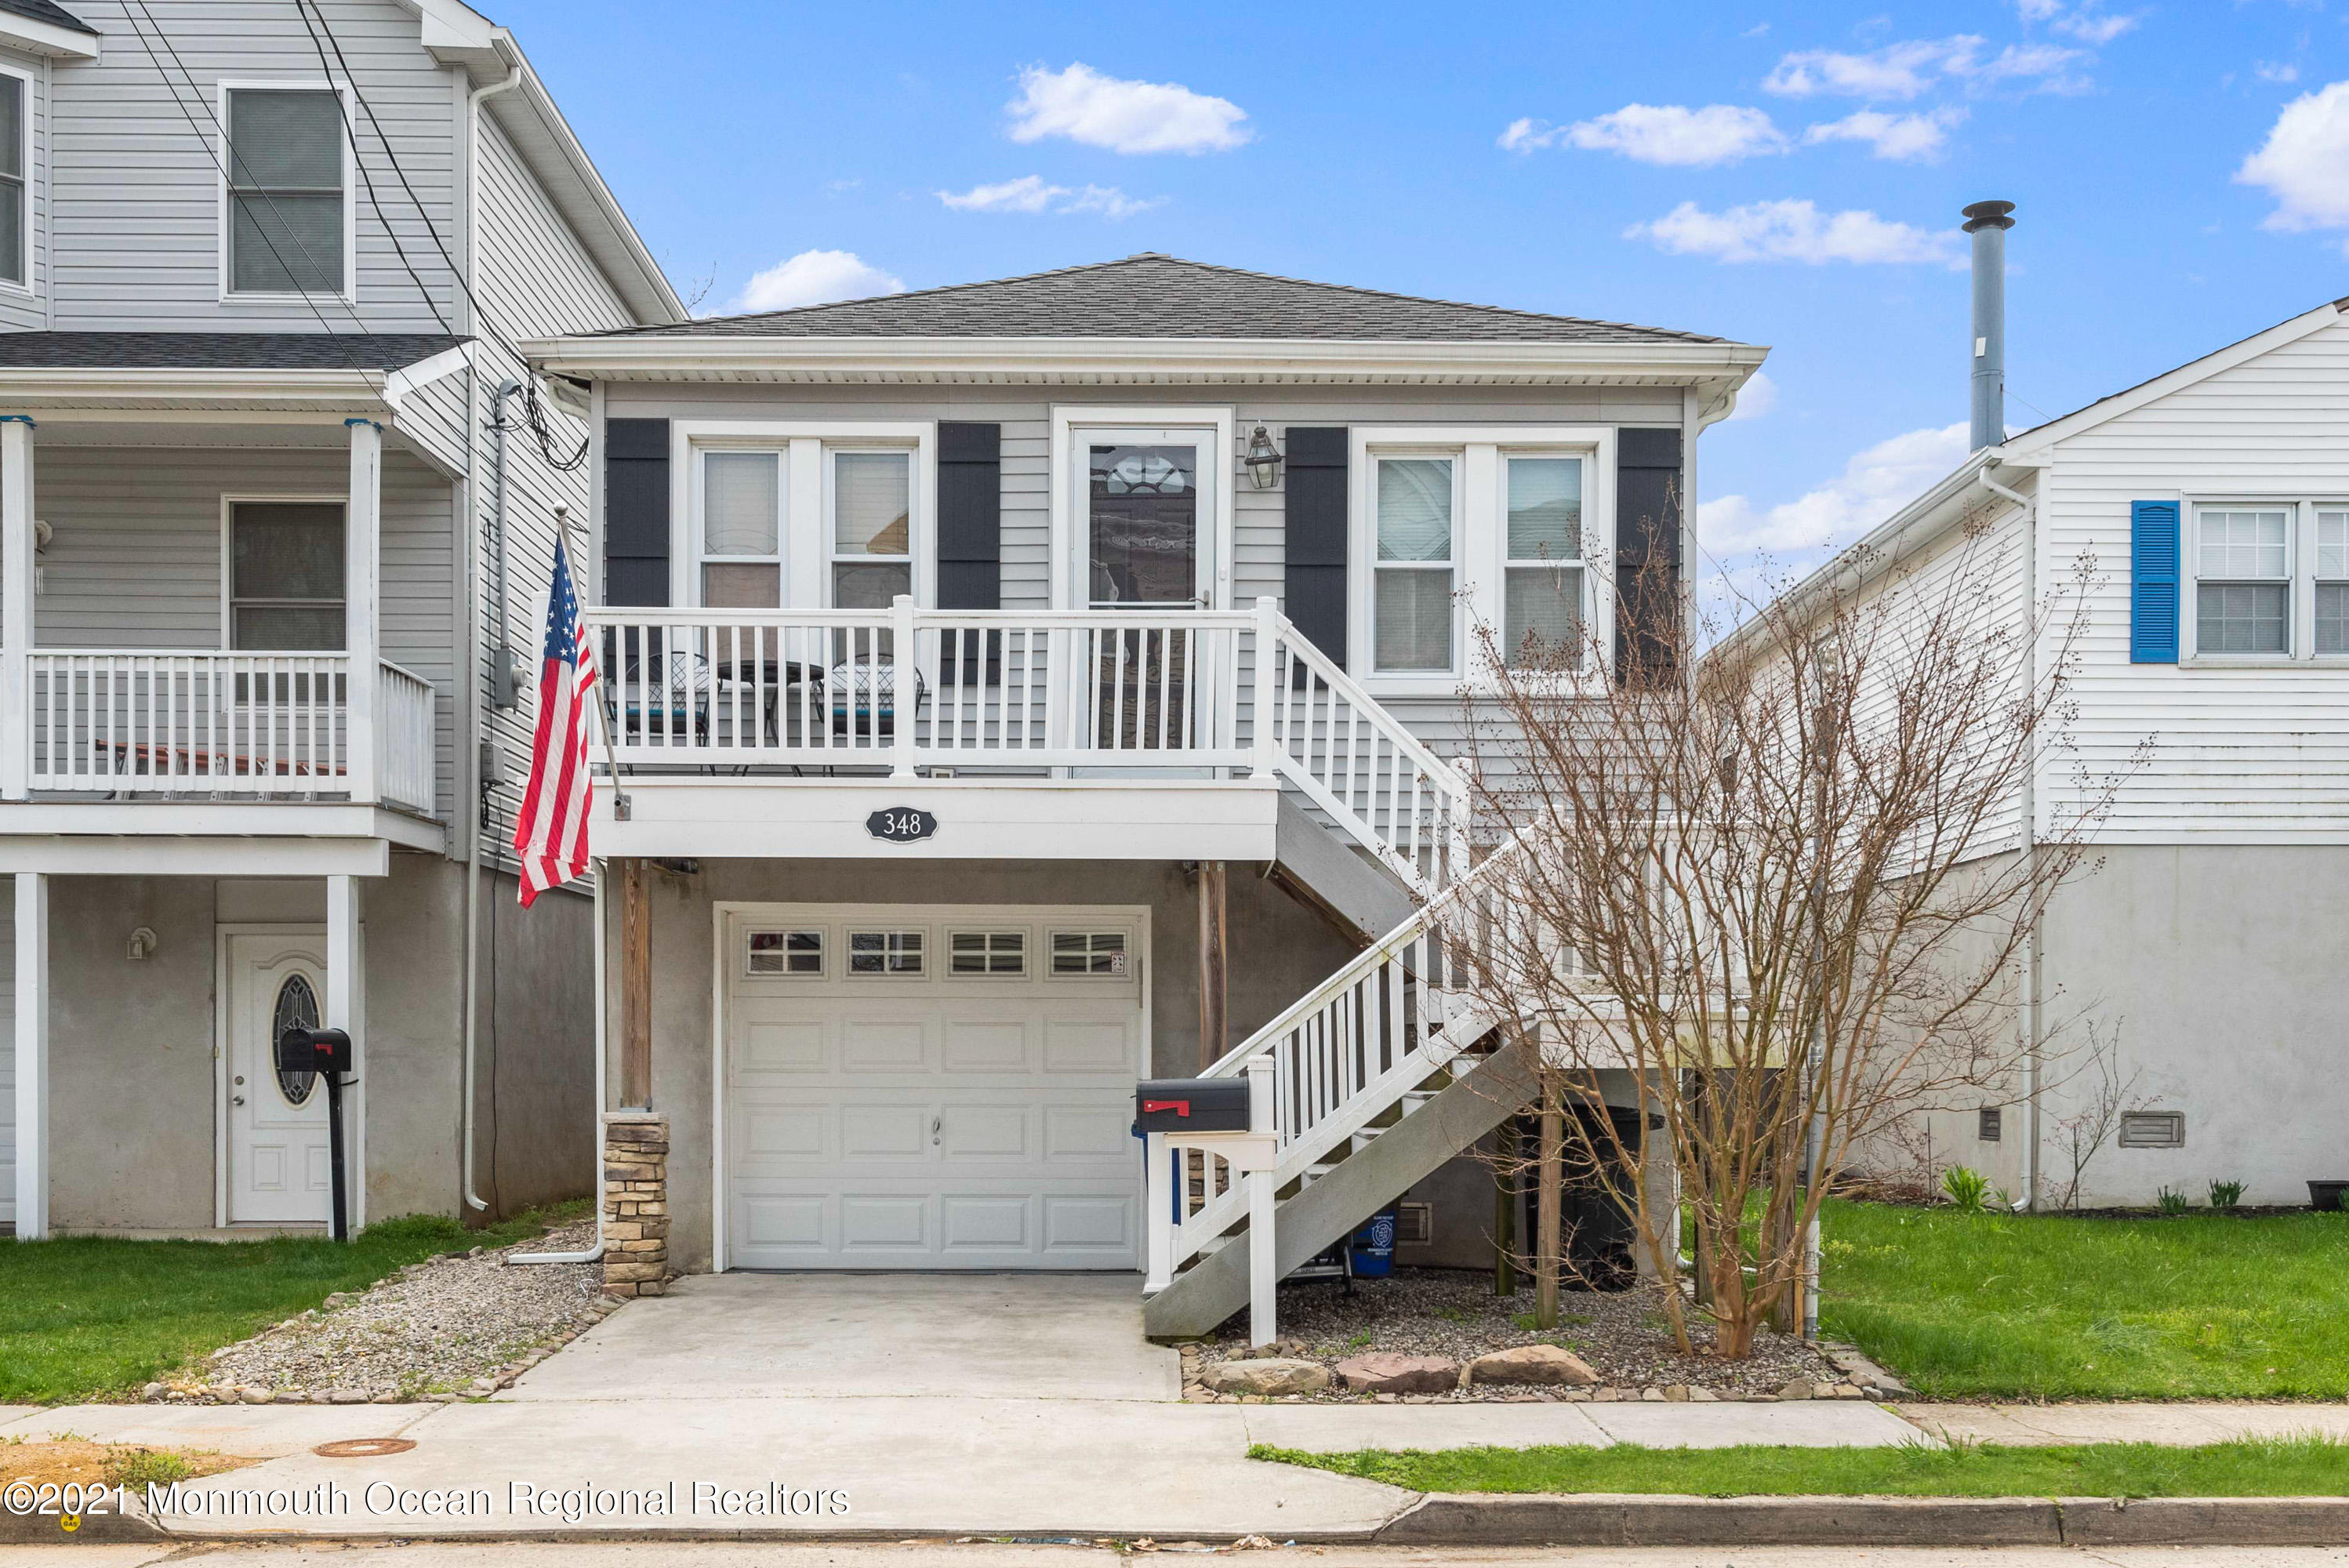 348 Park Avenue, Union Beach, New Jersey 07735, 2 Bedrooms Bedrooms, ,1 BathroomBathrooms,Single Family,For Sale,348 Park Avenue,1,22111196